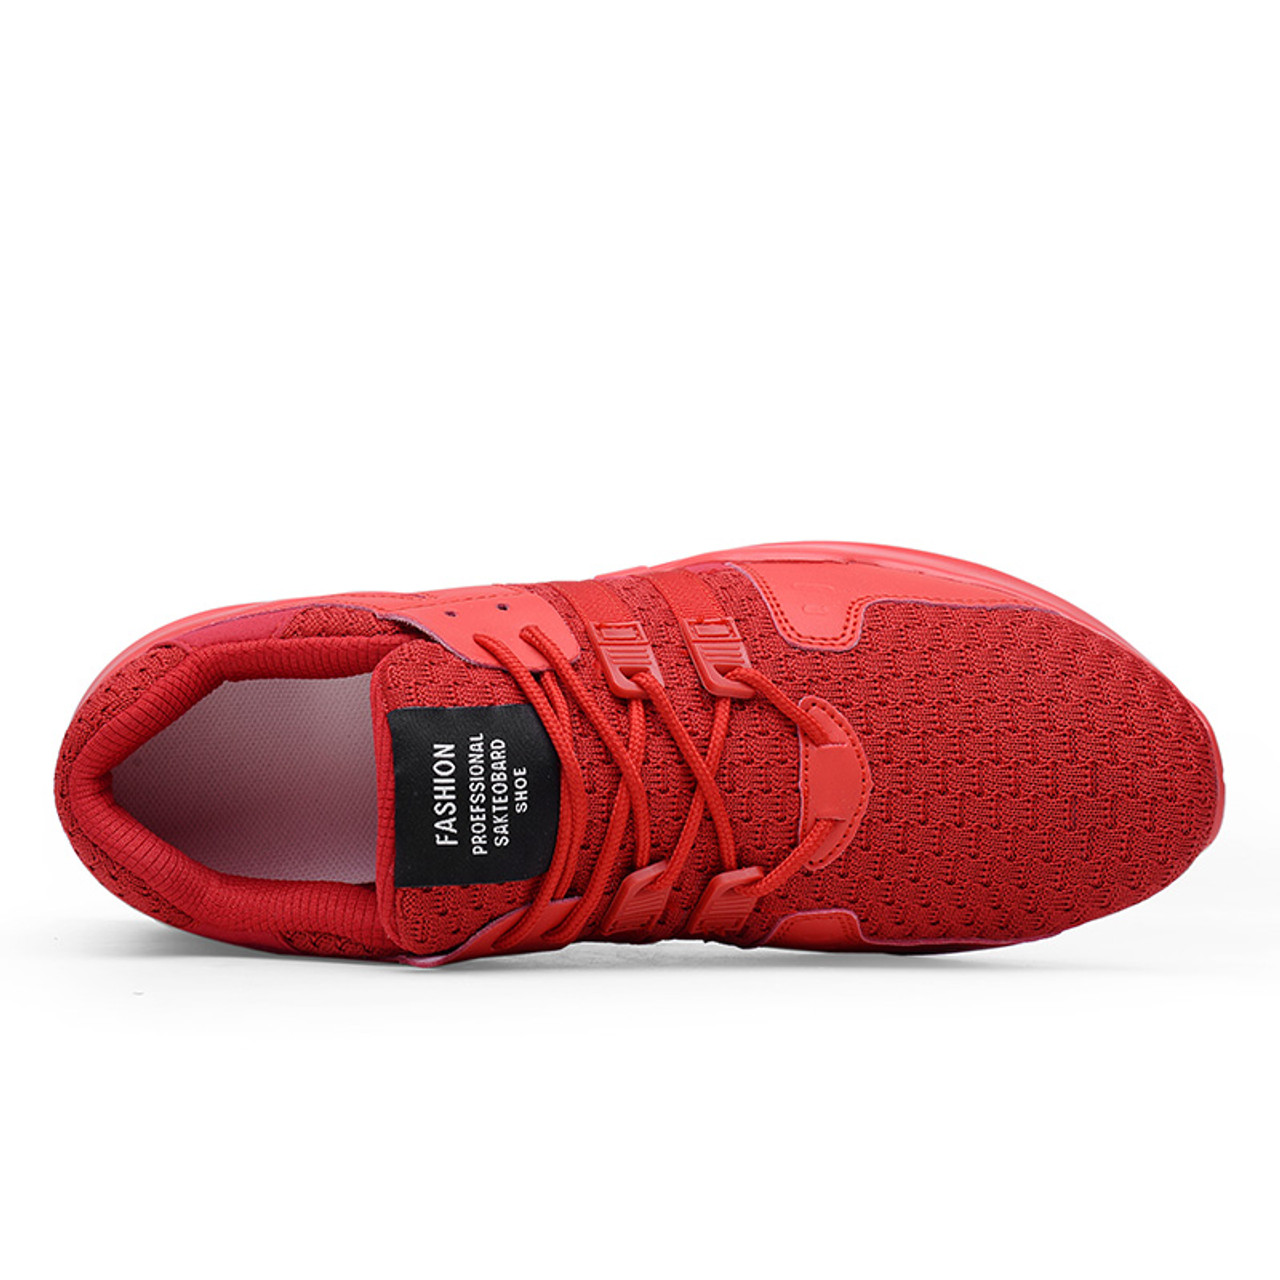 9e9cf251a0c338 ... DUDELI men fashion breathable casual shoes spring young Cheap high  quality Comfortable light sneakers Chaussures pour ...